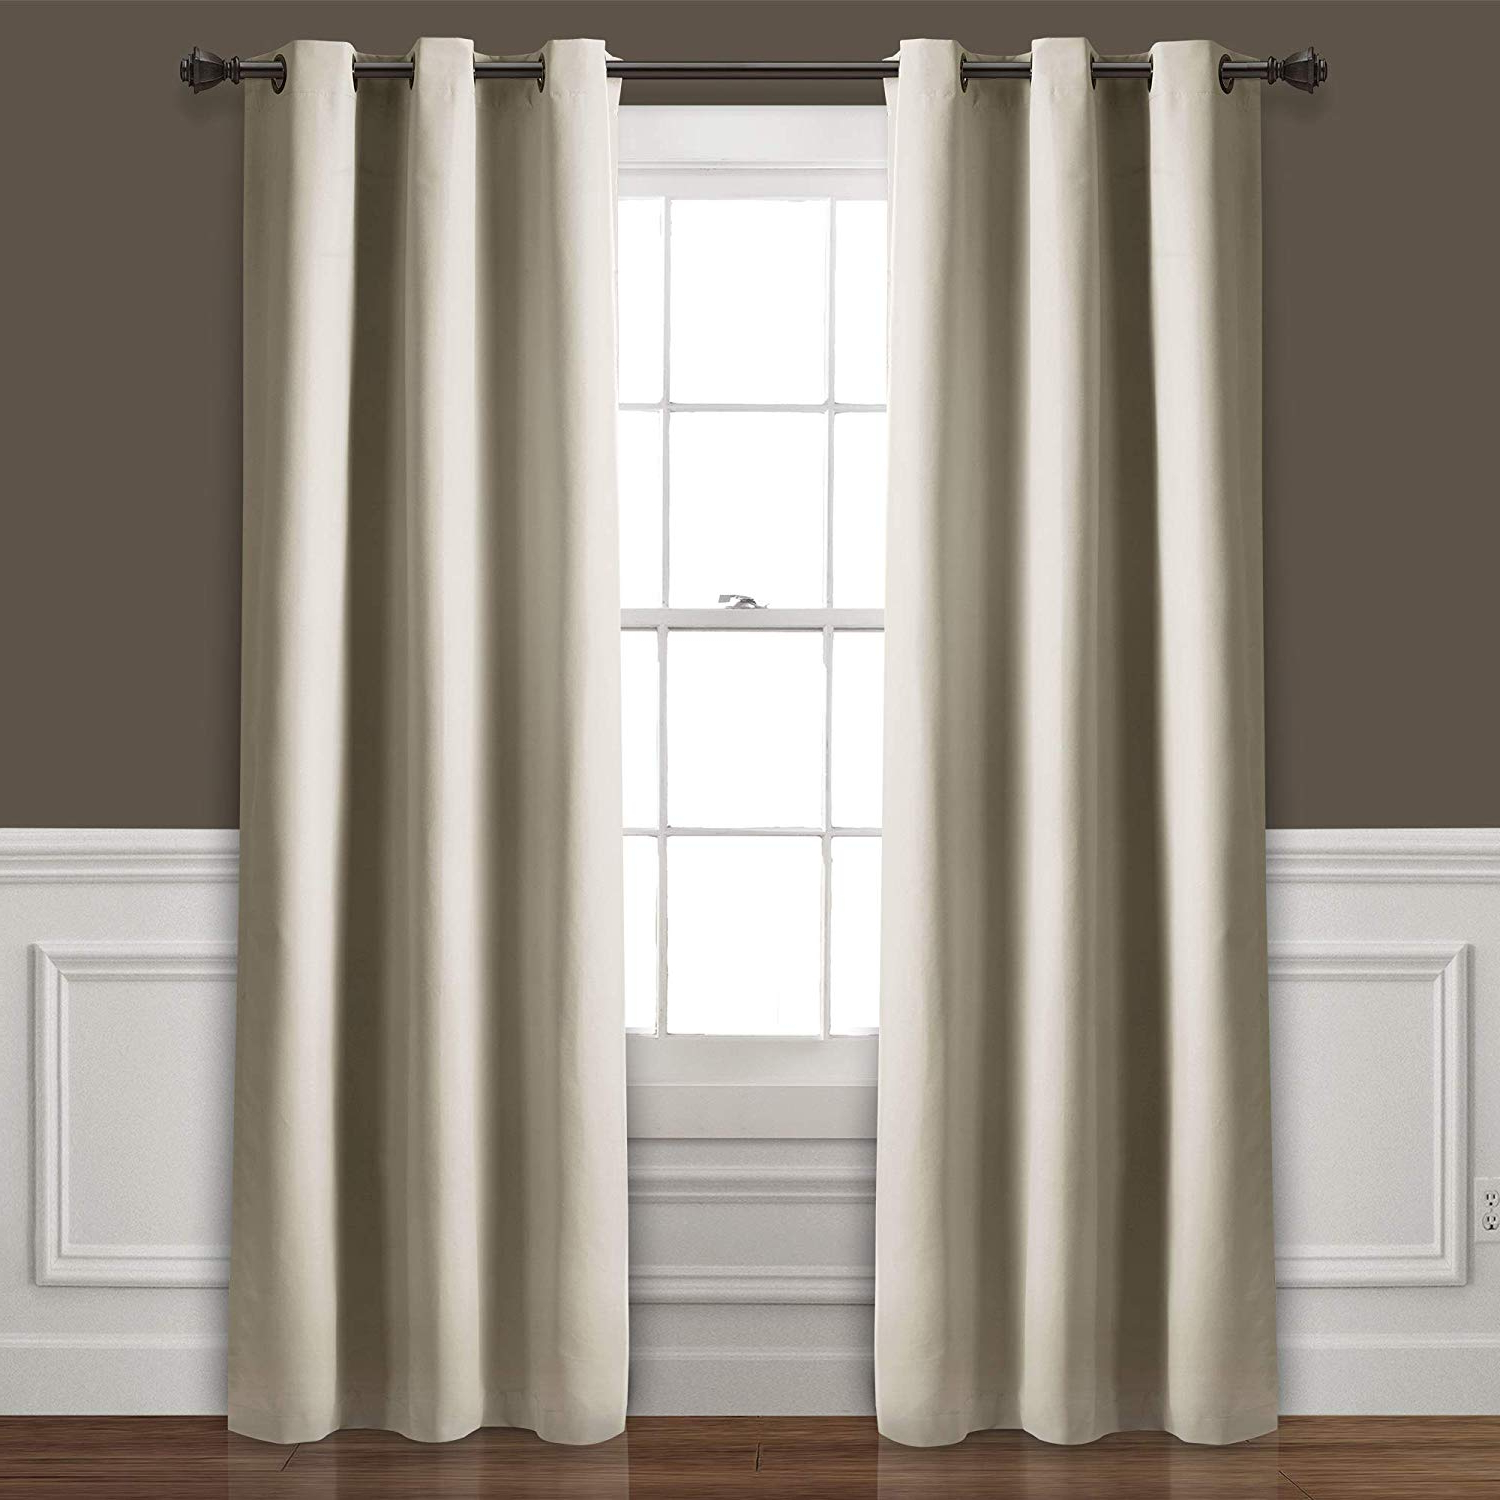 Lush Decor Absolute Blackout Wheat Insulated Grommet Window Curtain Panel Pair (View 6 of 20)